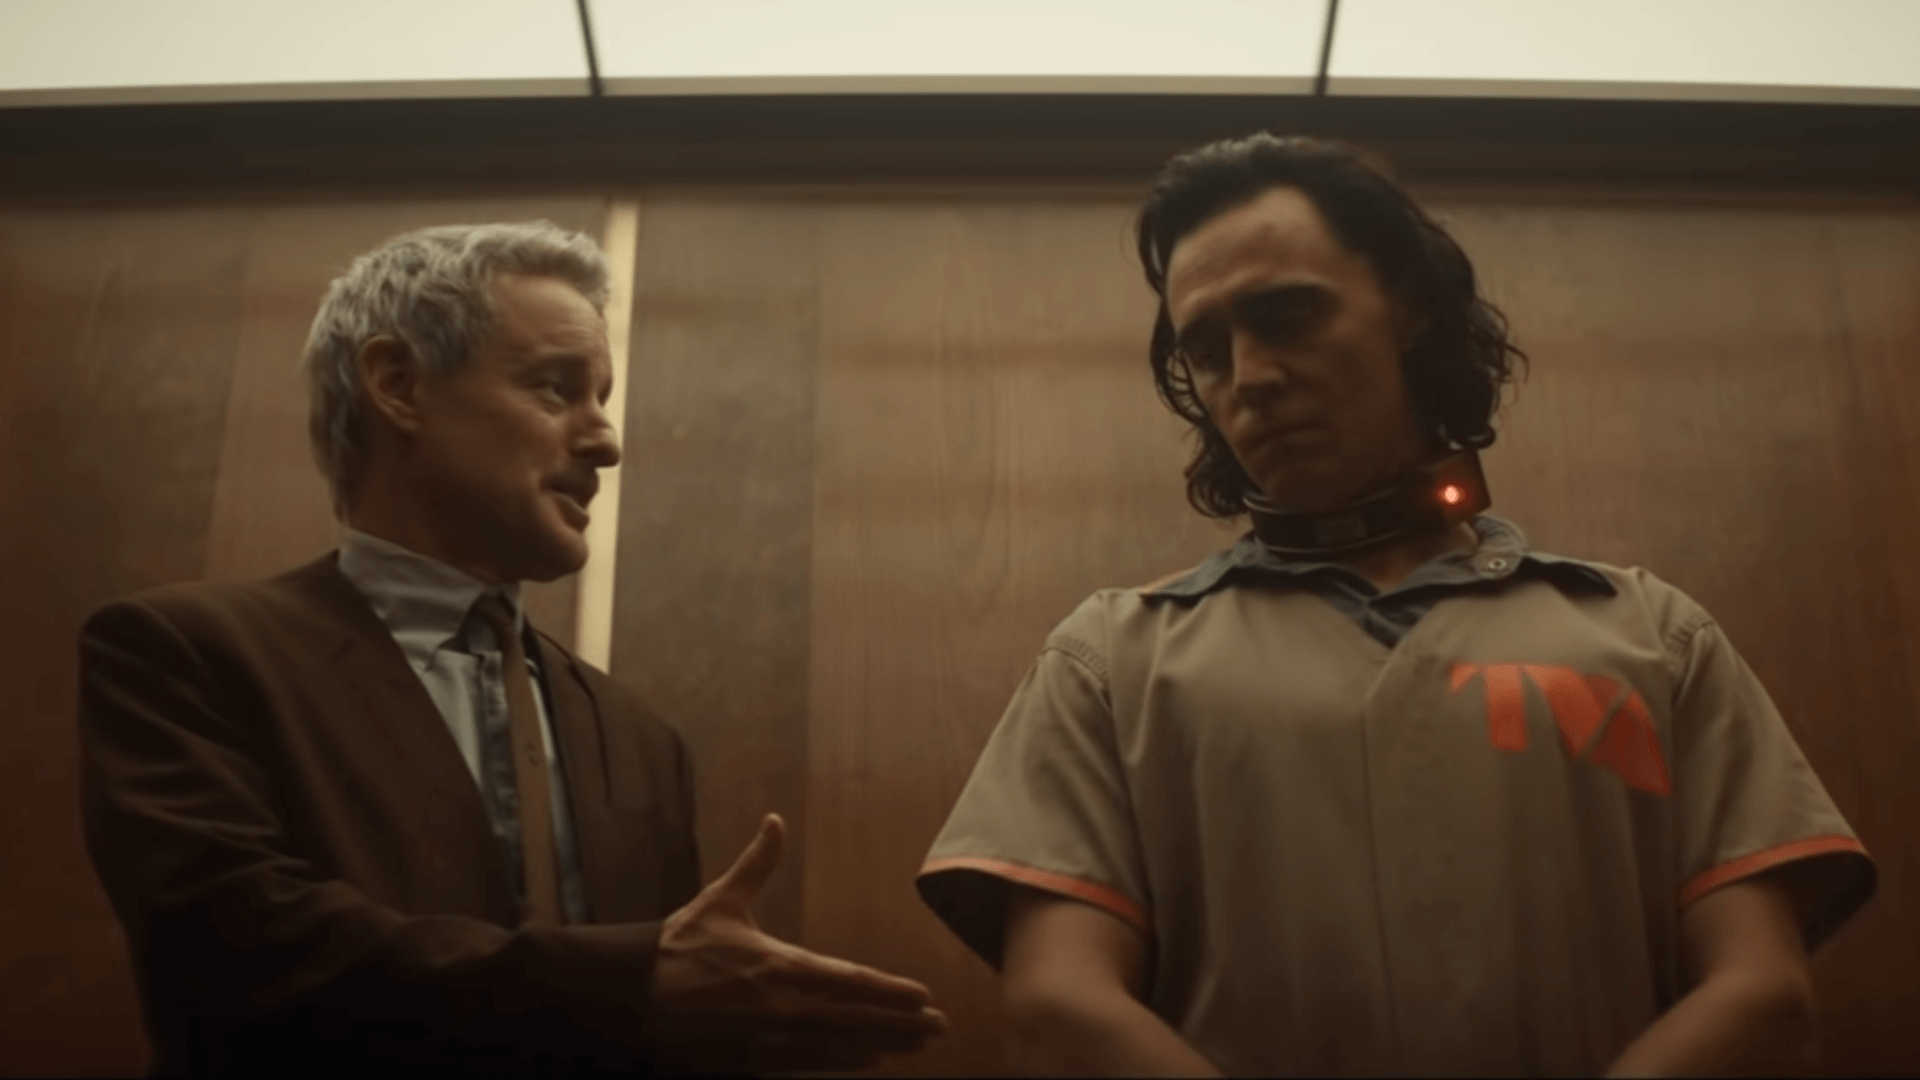 Loki Sneak Peek Teases The Time-Keepers And The TVA's Role